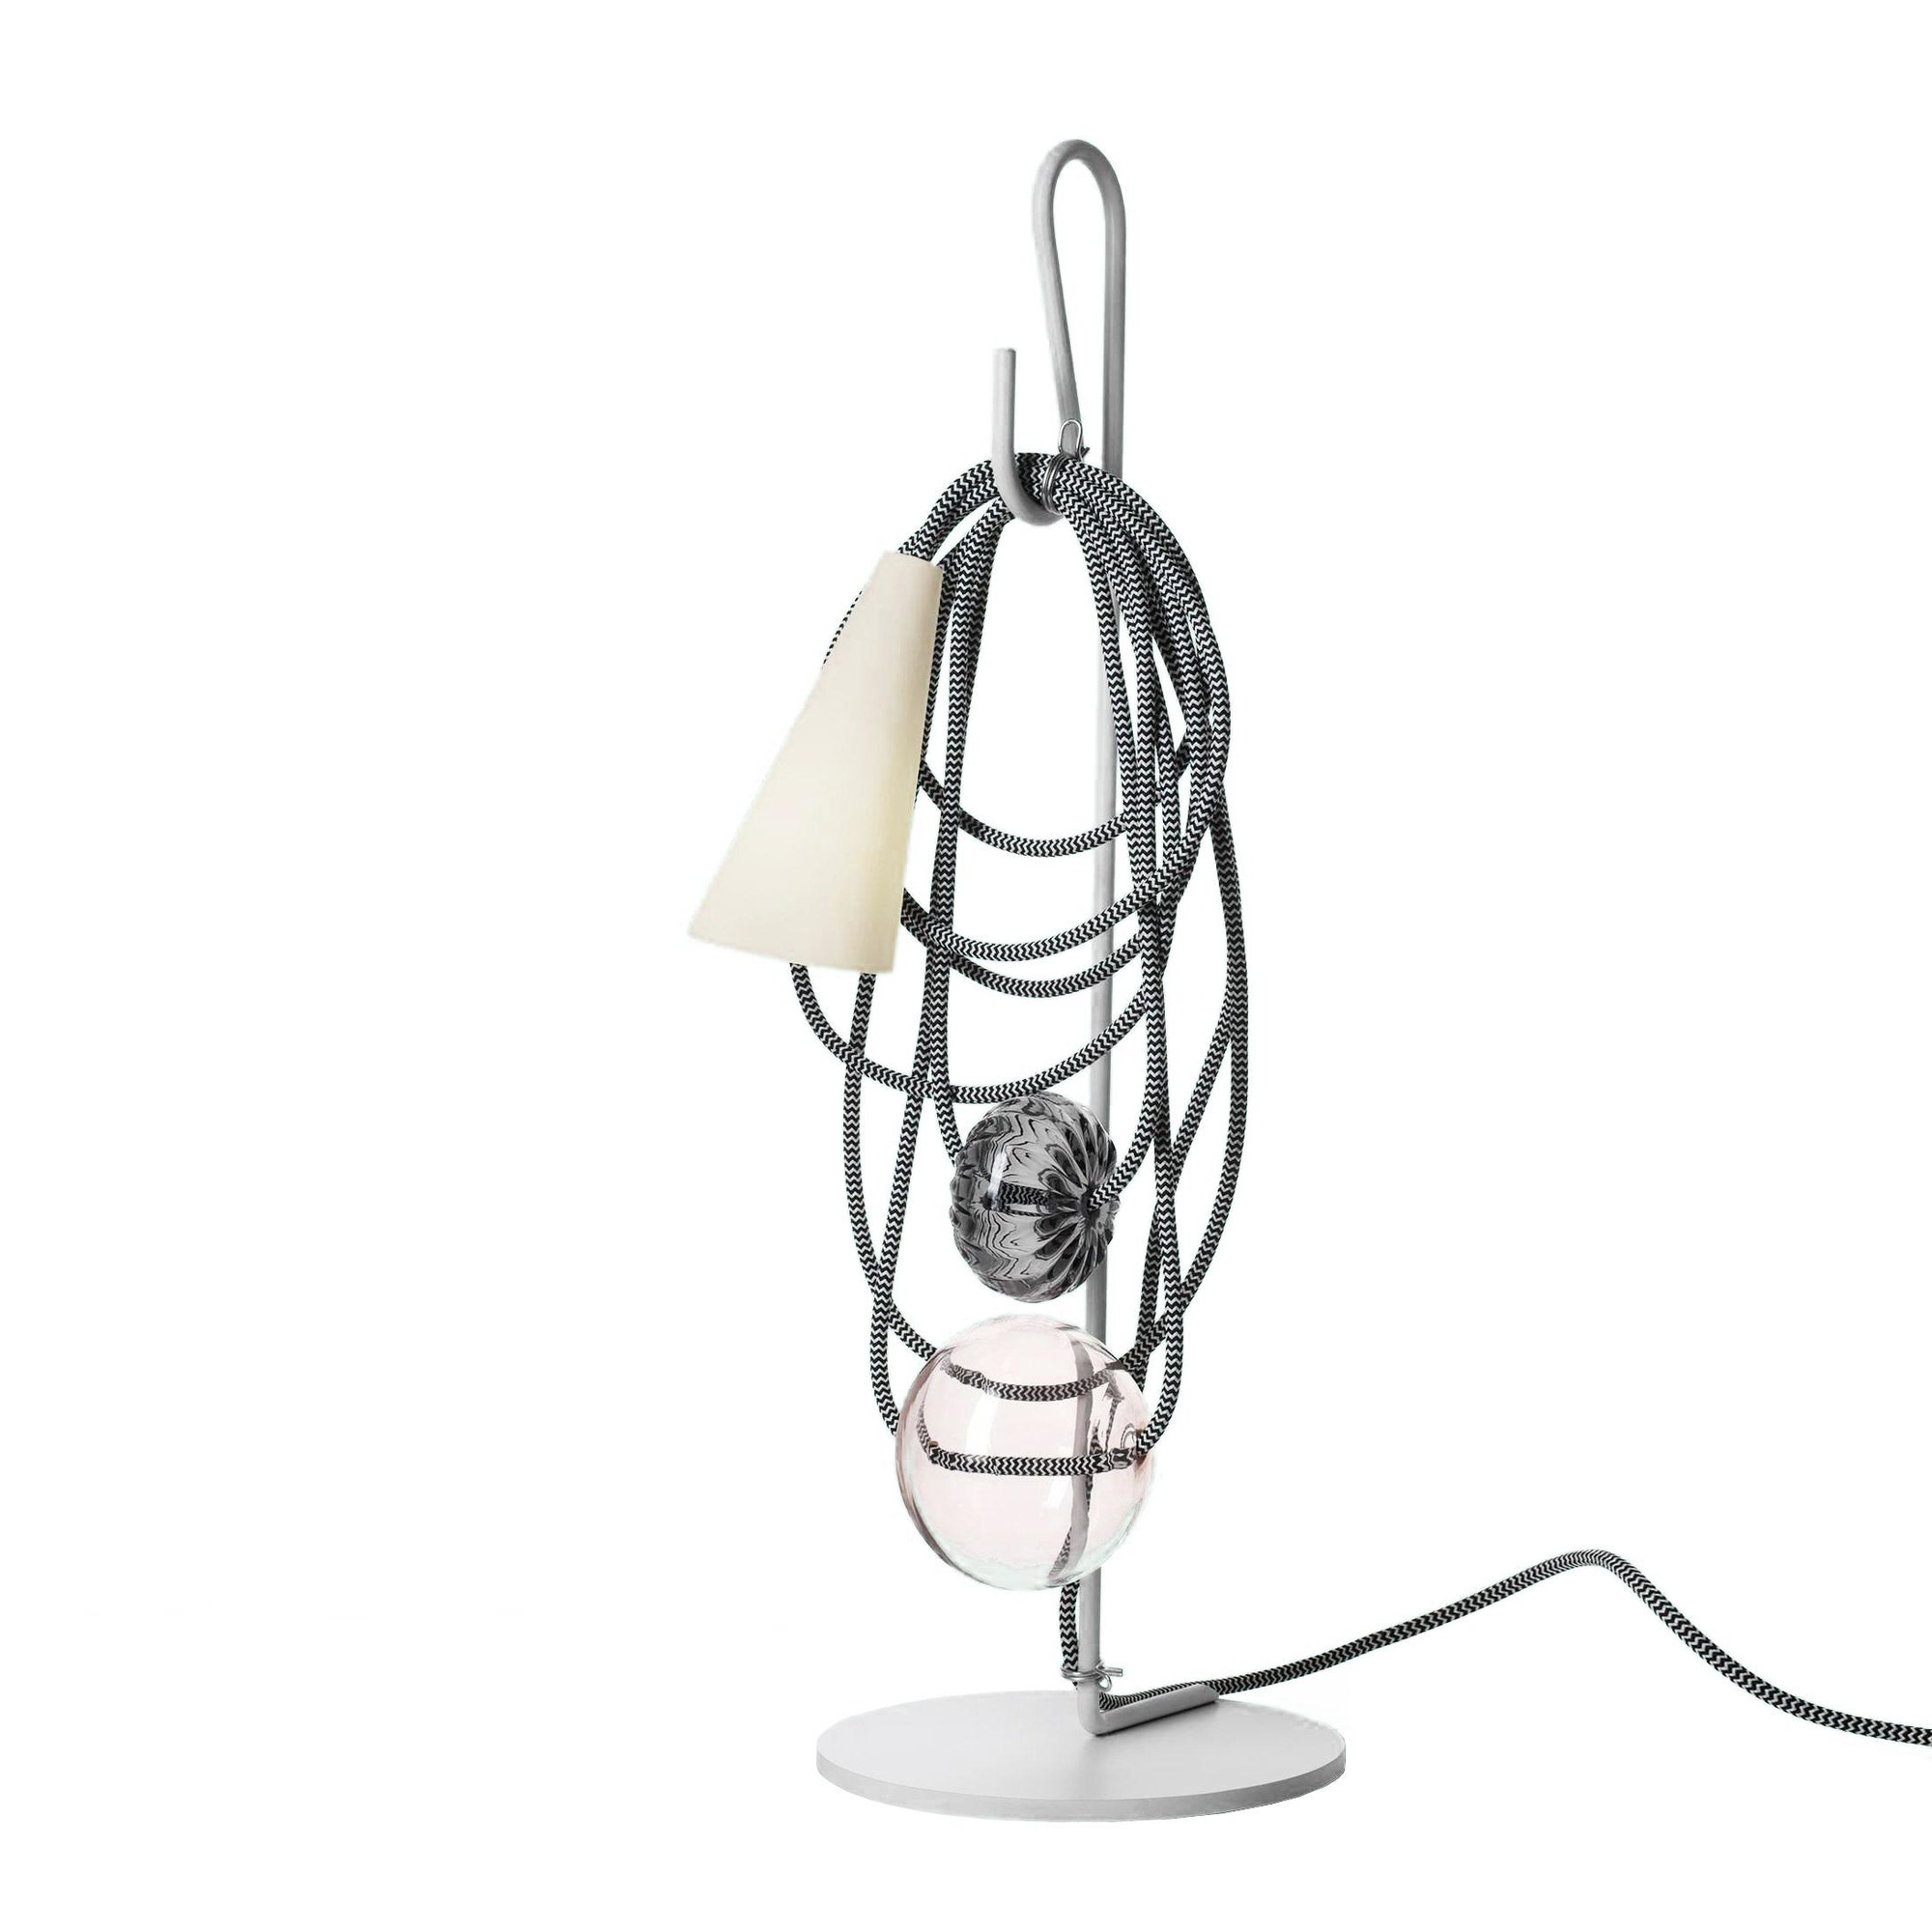 Foscarini Filo Table Lamp Ambientedirect Chandelier Wiring Black White Amethyst Queen Grey Transparent Blown Glass Frame